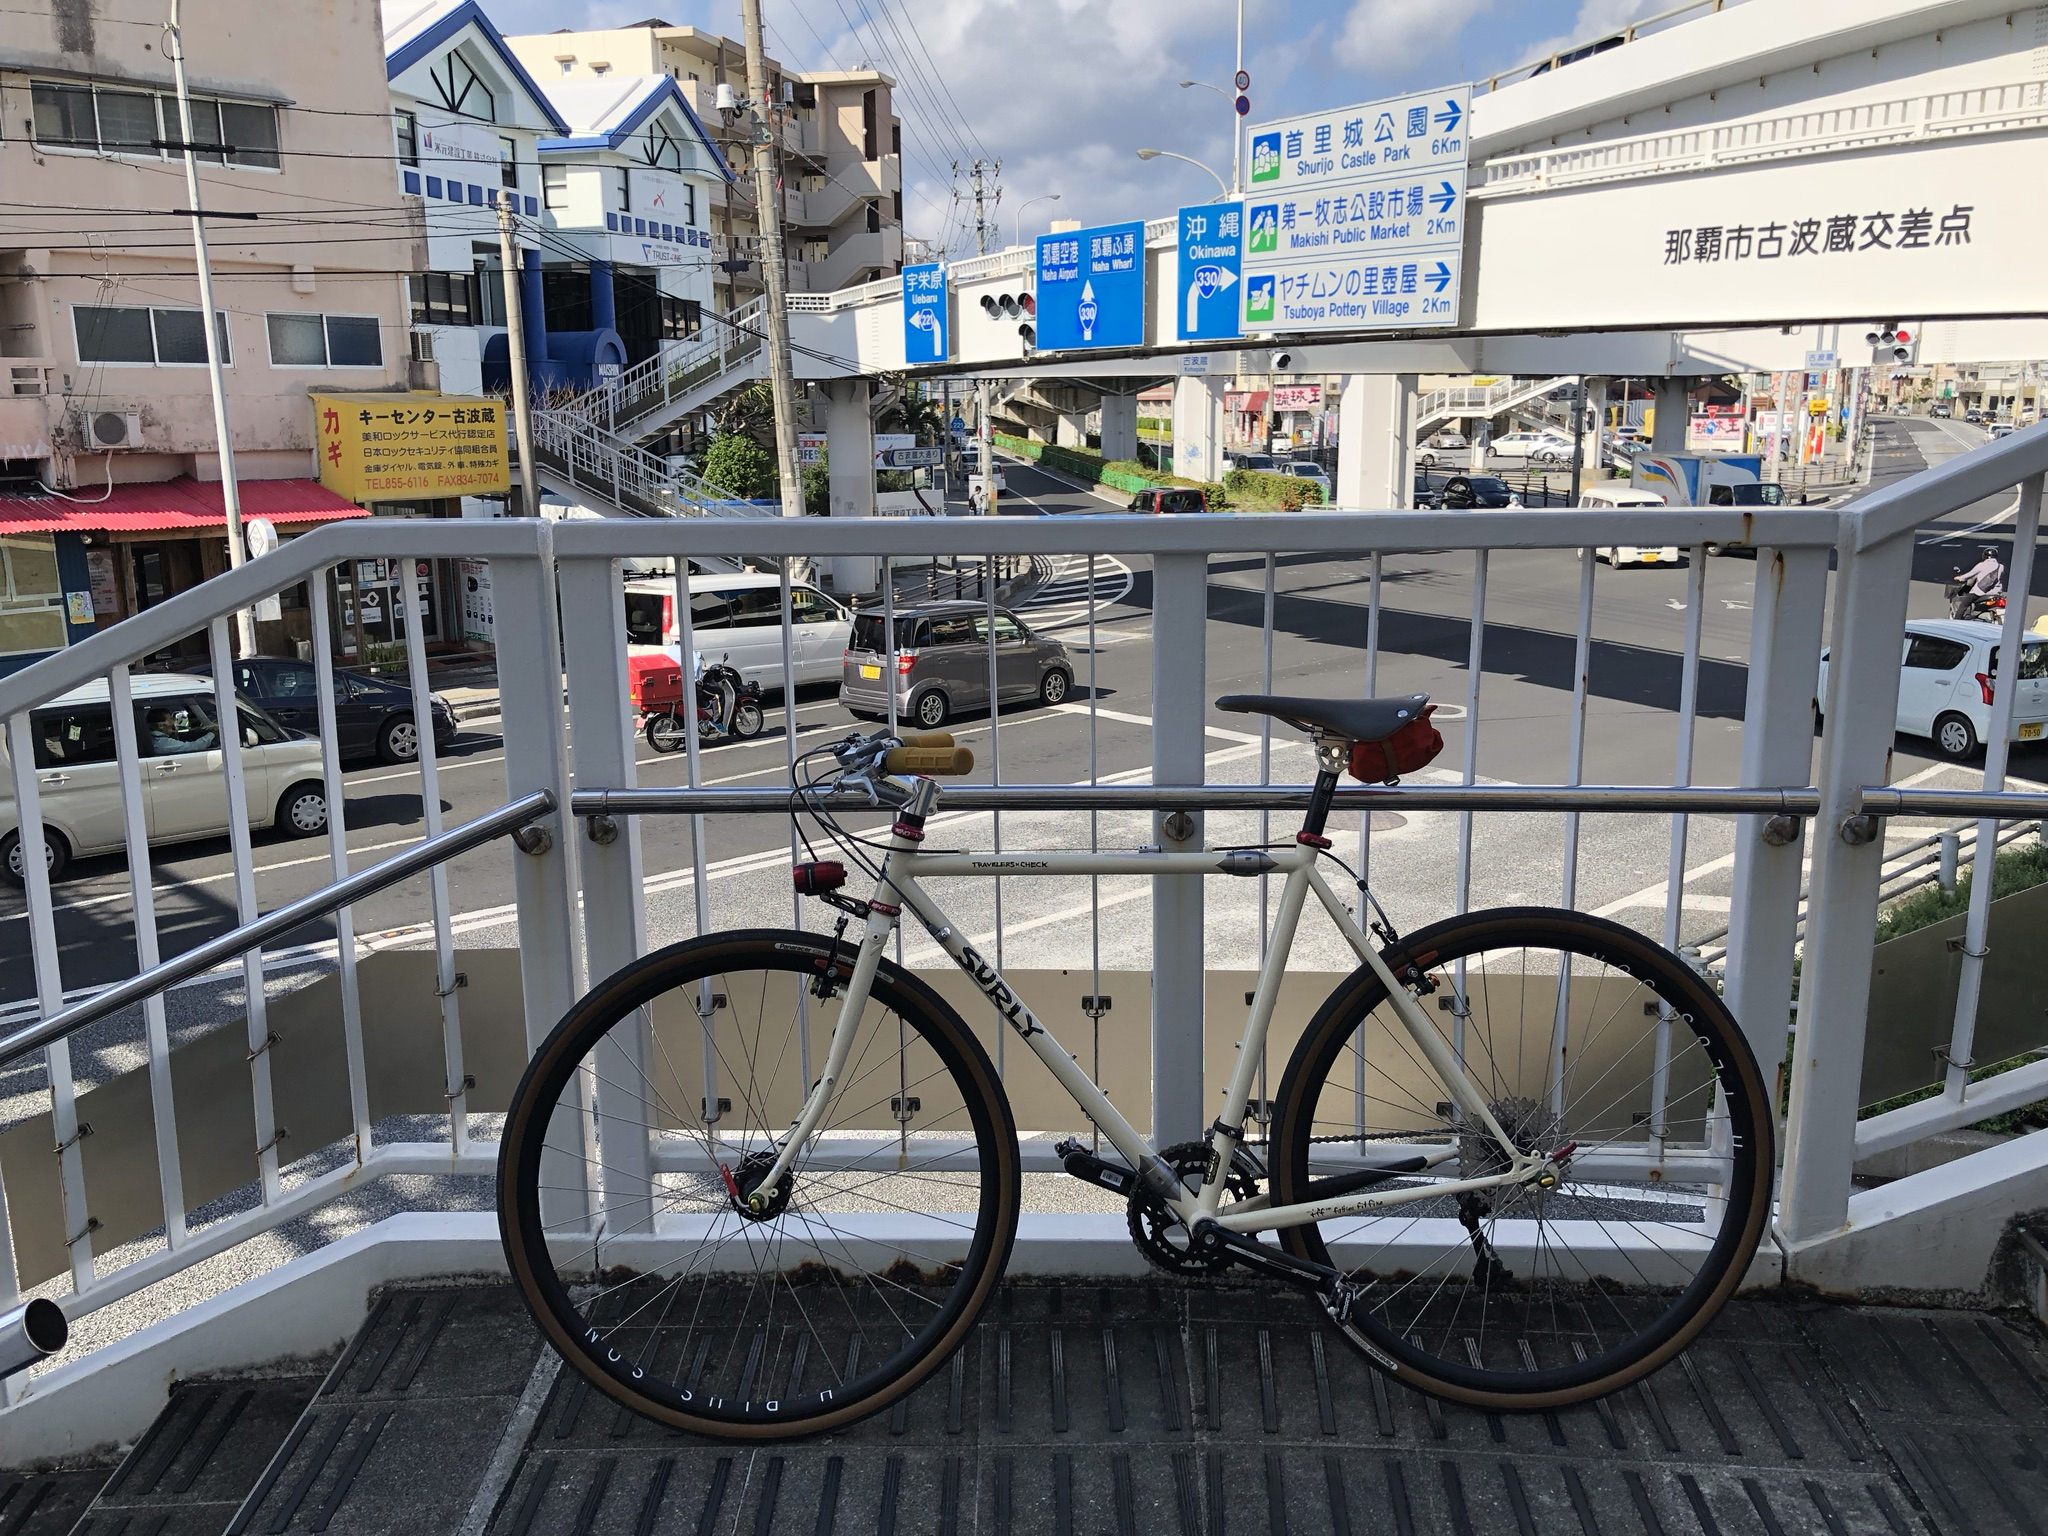 Somewhere on the 330 in Naha, Okinawa